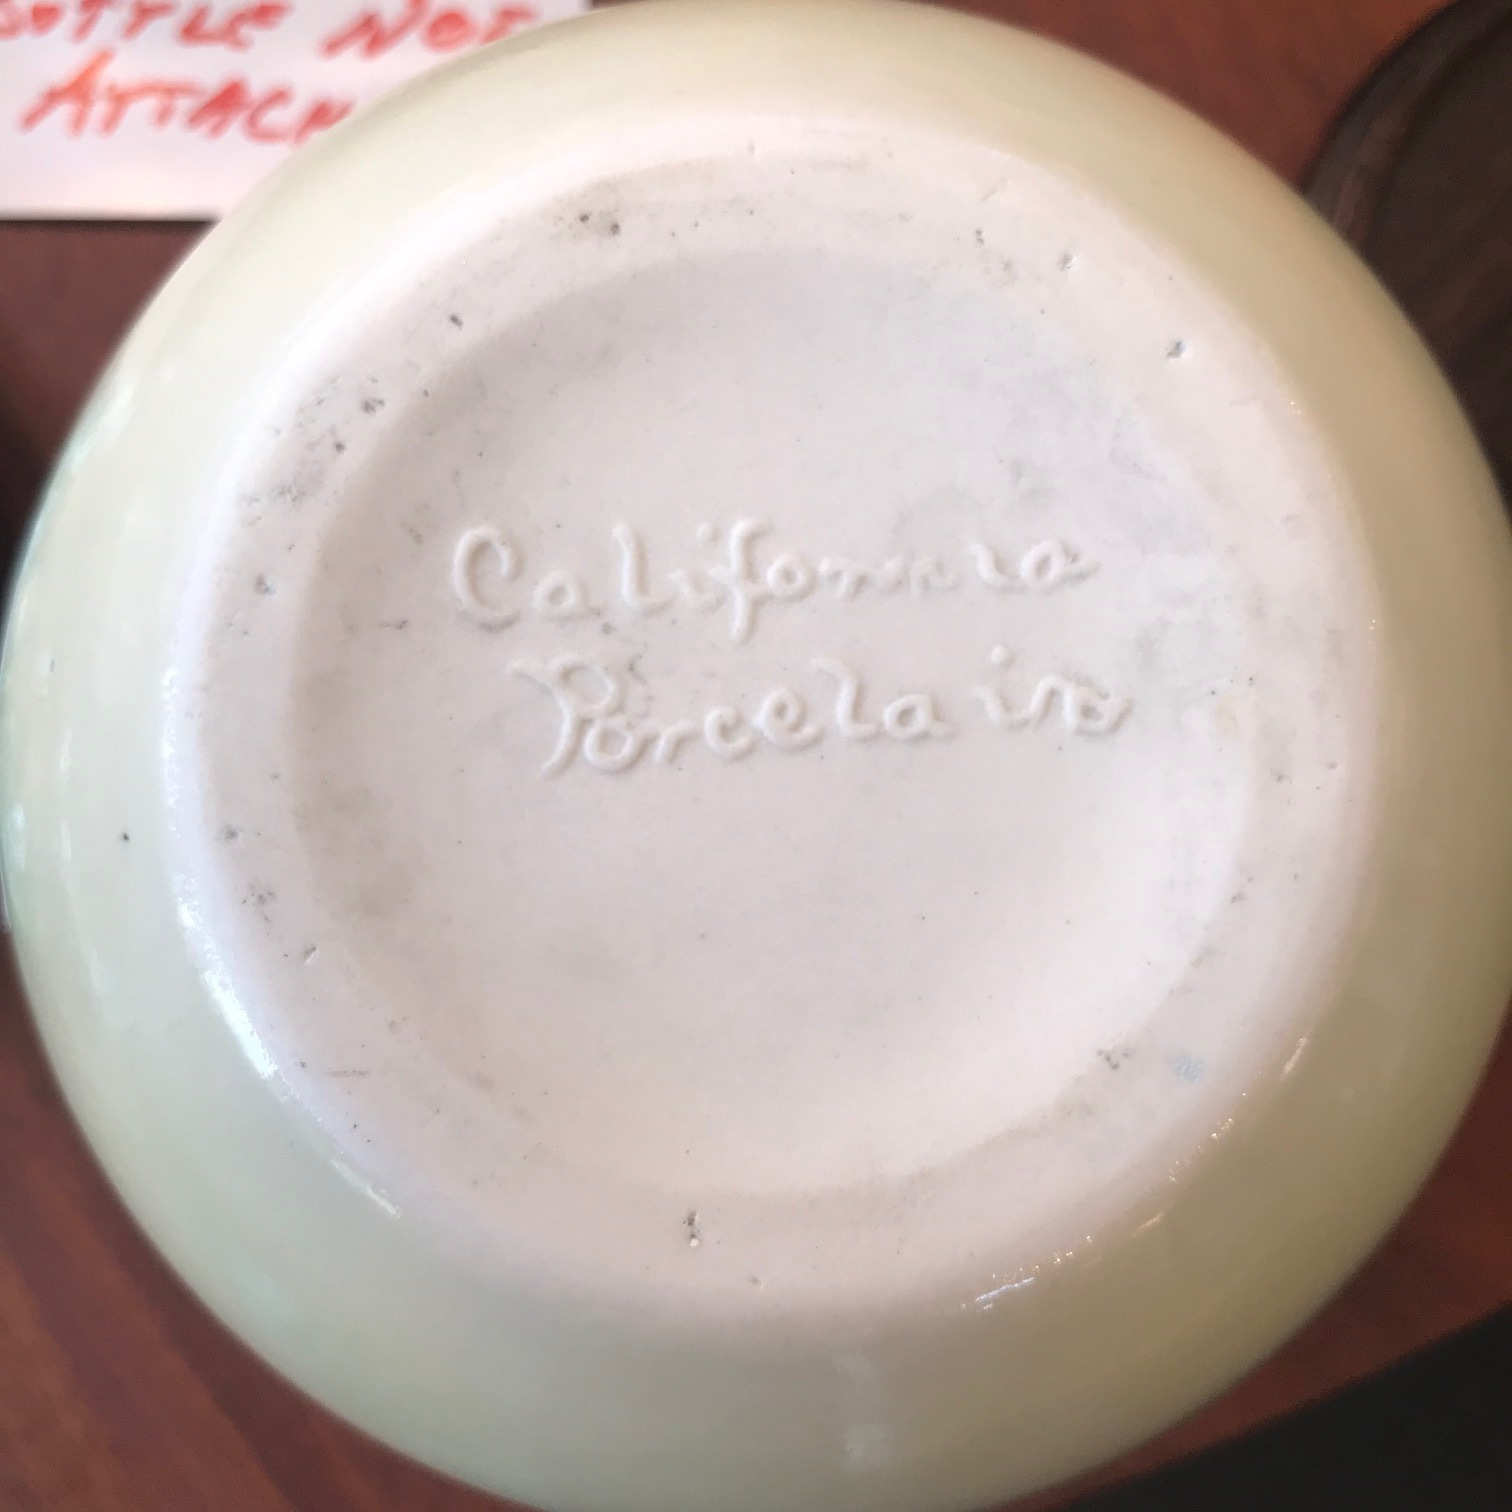 16 CALIFORNIA PORCELAIN C.jpg